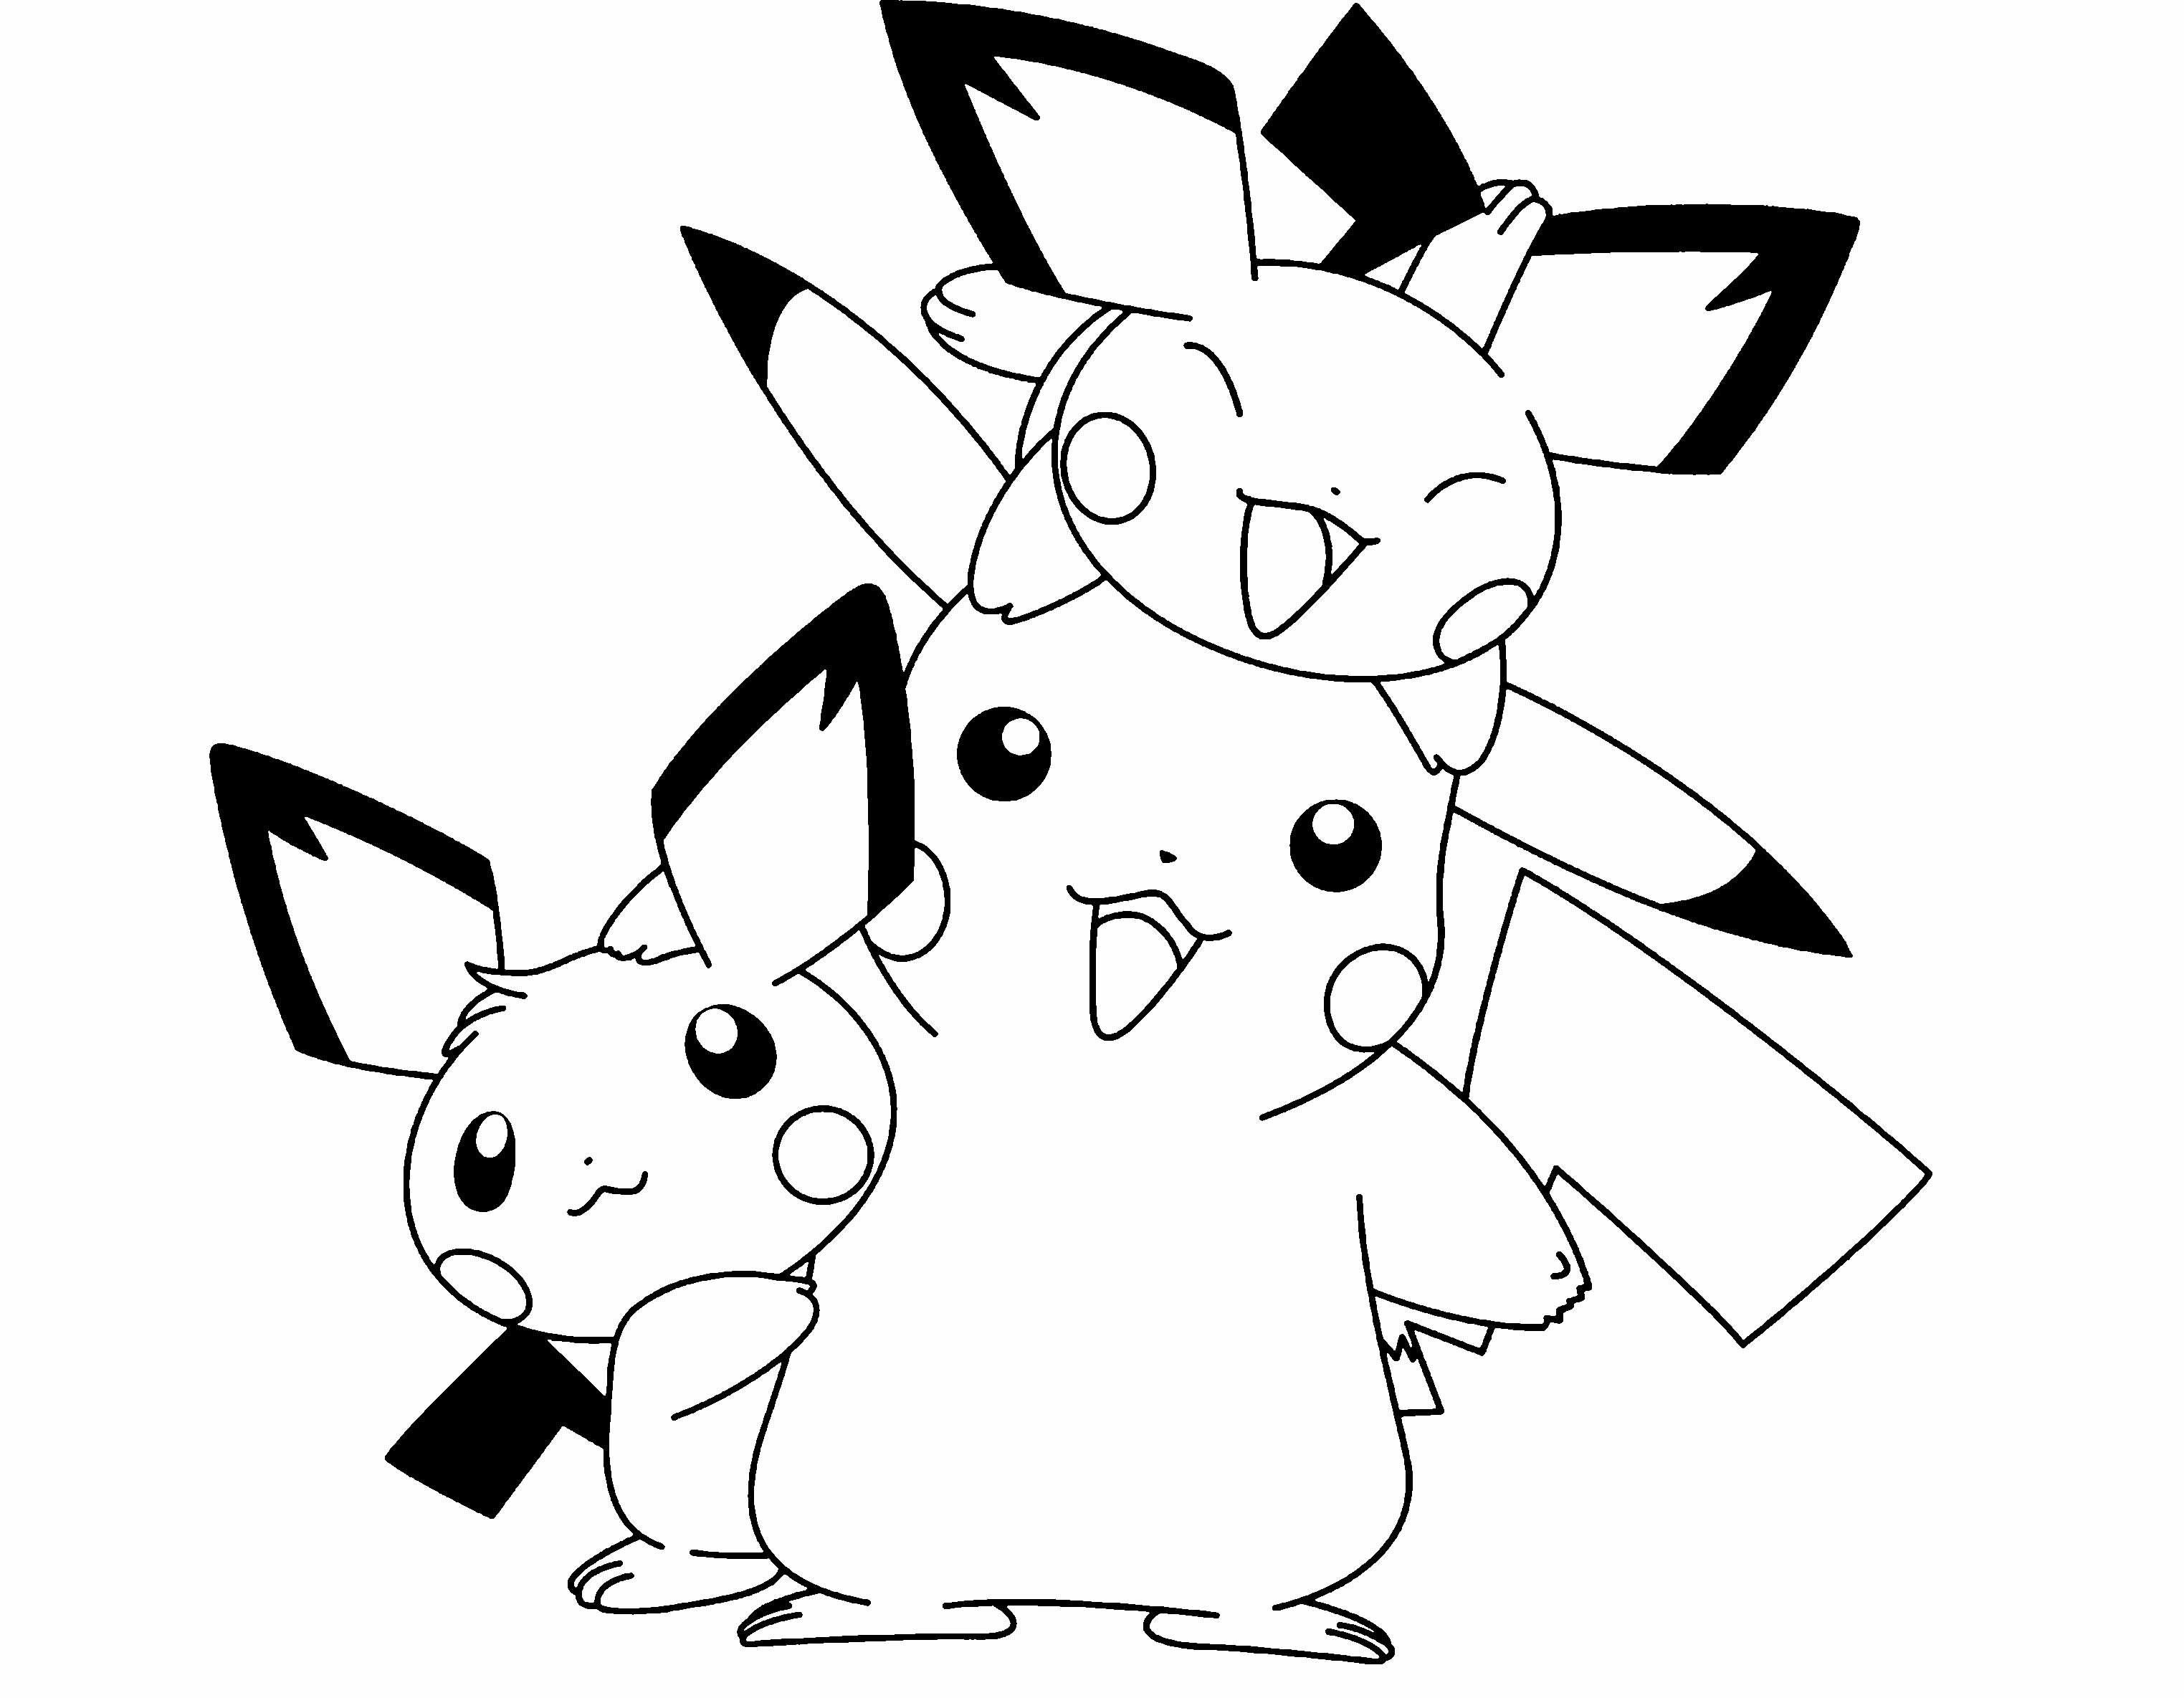 Pichu Pikachu Raichu Coloring Pages From The Thousand Pictures On The Net About Pichu Pikachu R Pikachu Coloring Page Pokemon Coloring Pokemon Coloring Pages